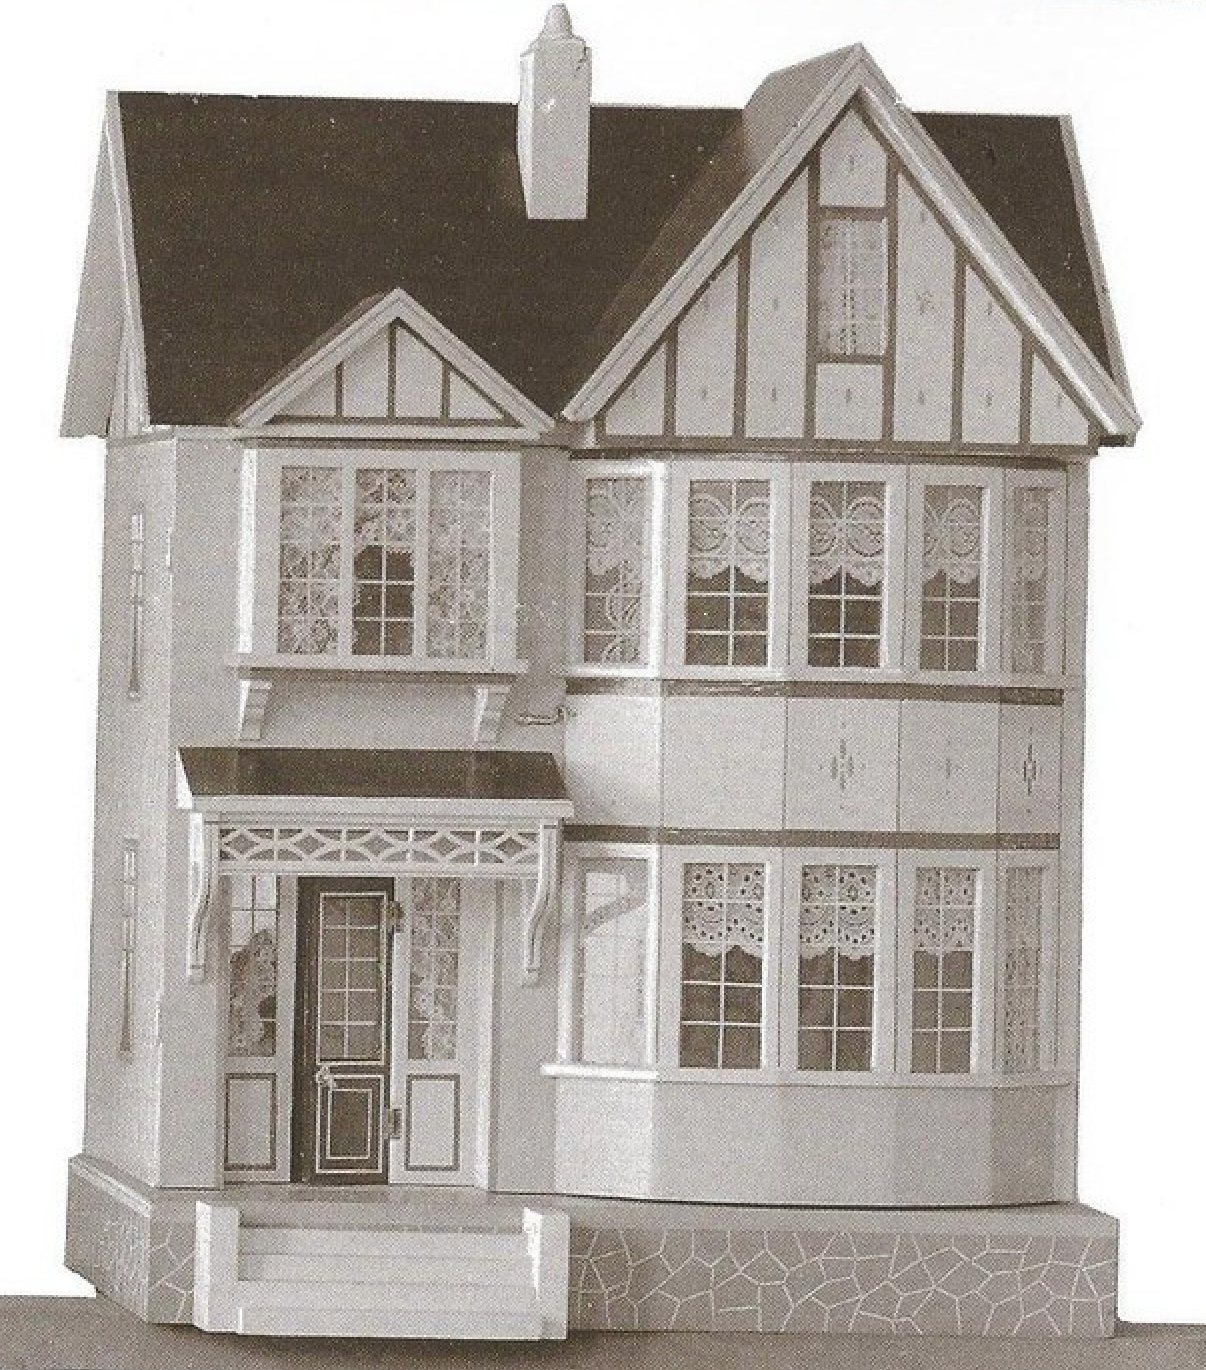 Susan 39 s mini homes red roof and bay window gottschalk - Houses with bay windows ...